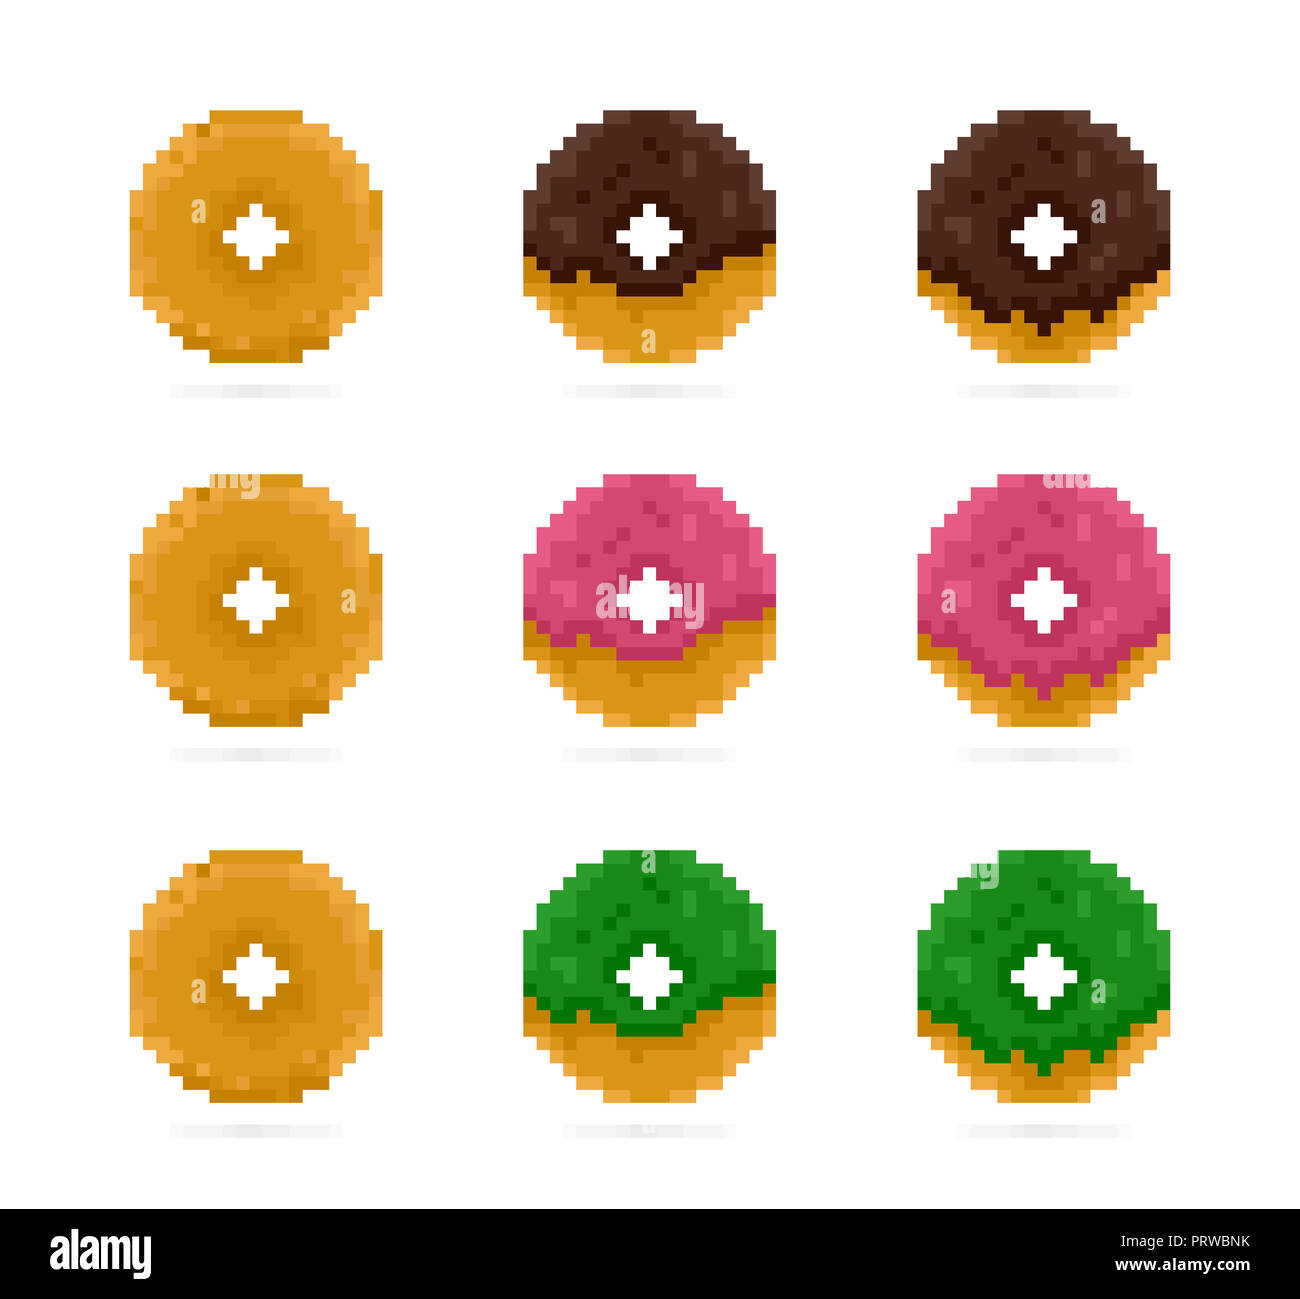 Colored Donuts Set In Pixel Art Style Pink Green And Brown Doughnut Dessert Sweets 8 Bit Icon